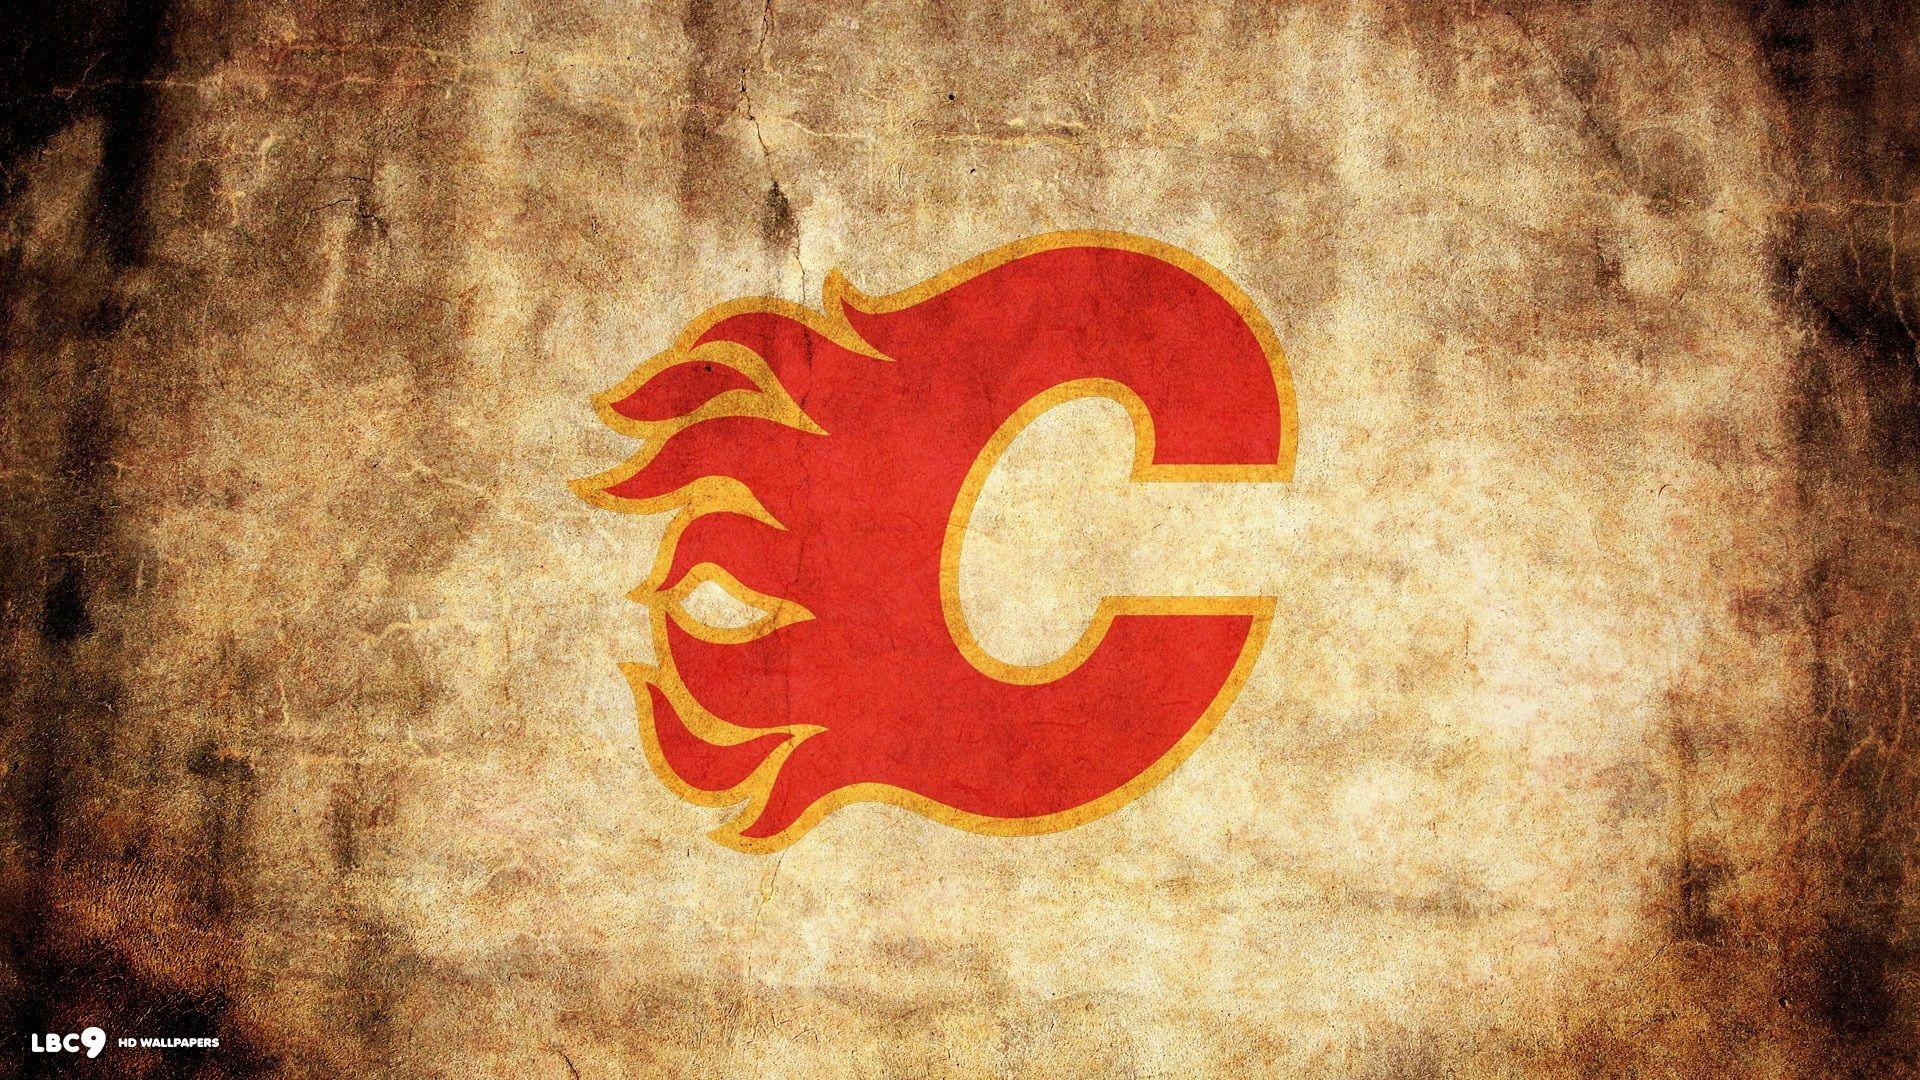 Calgary Flames Wallpapers - Wallpaper Cave